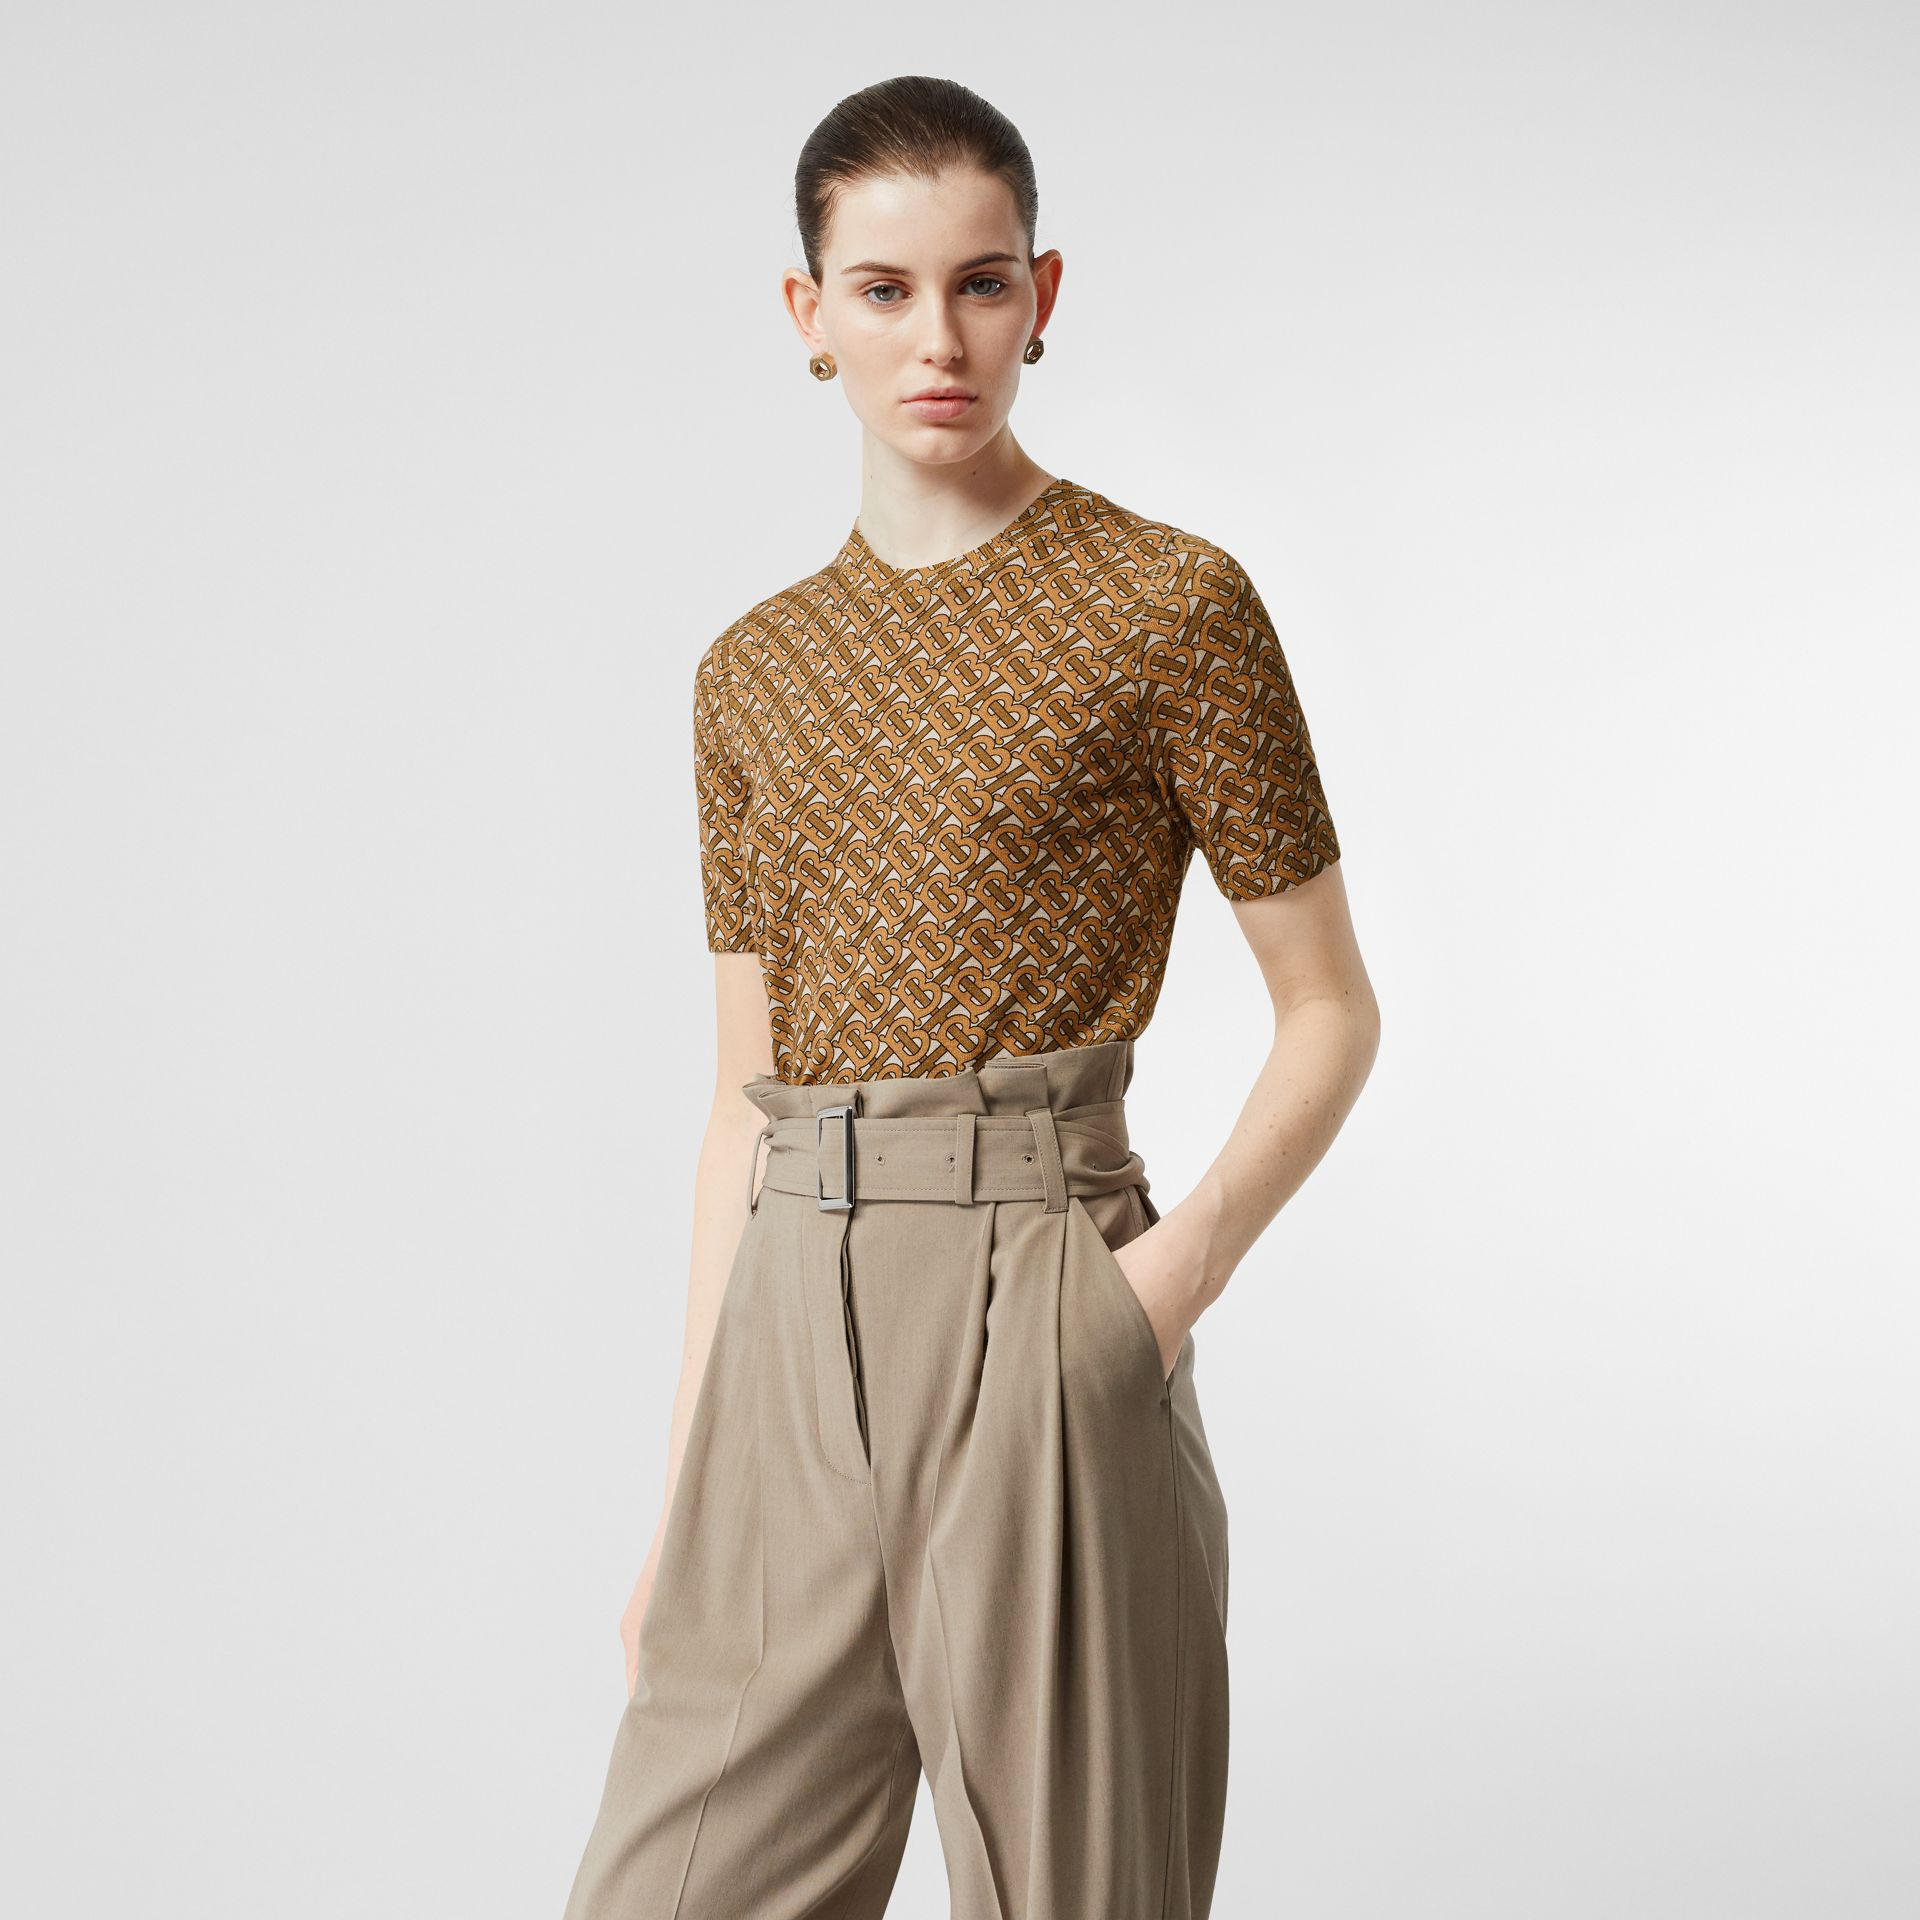 Monogram Print Merino Wool Top in Beige - Women | Burberry Australia - gallery image 4